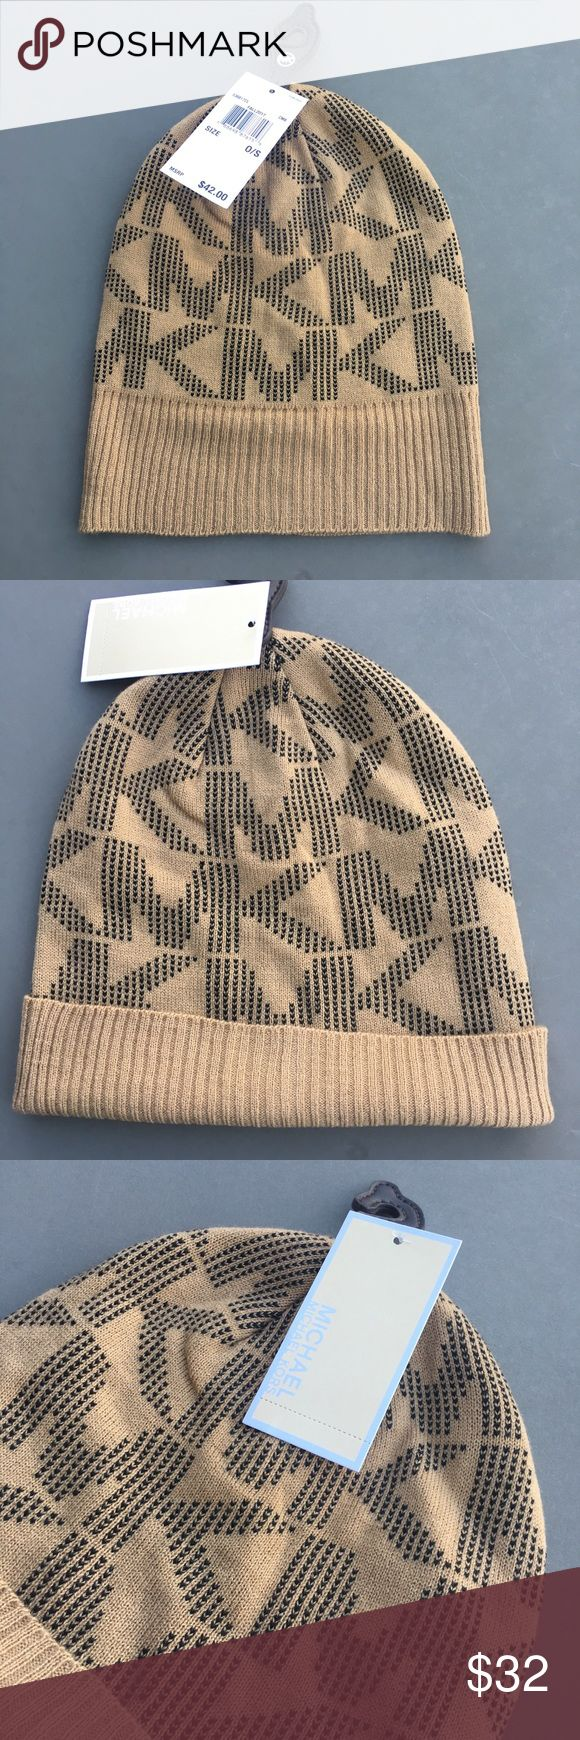 Authentic Michael Kors beanie Winter Hat NWT Selling an authentic Michael Kors beanie Winter Hat. Great gift or Christmas present idea. New with tags! Bundle other items in my closet to save! No trades MICHAEL Michael Kors Accessories